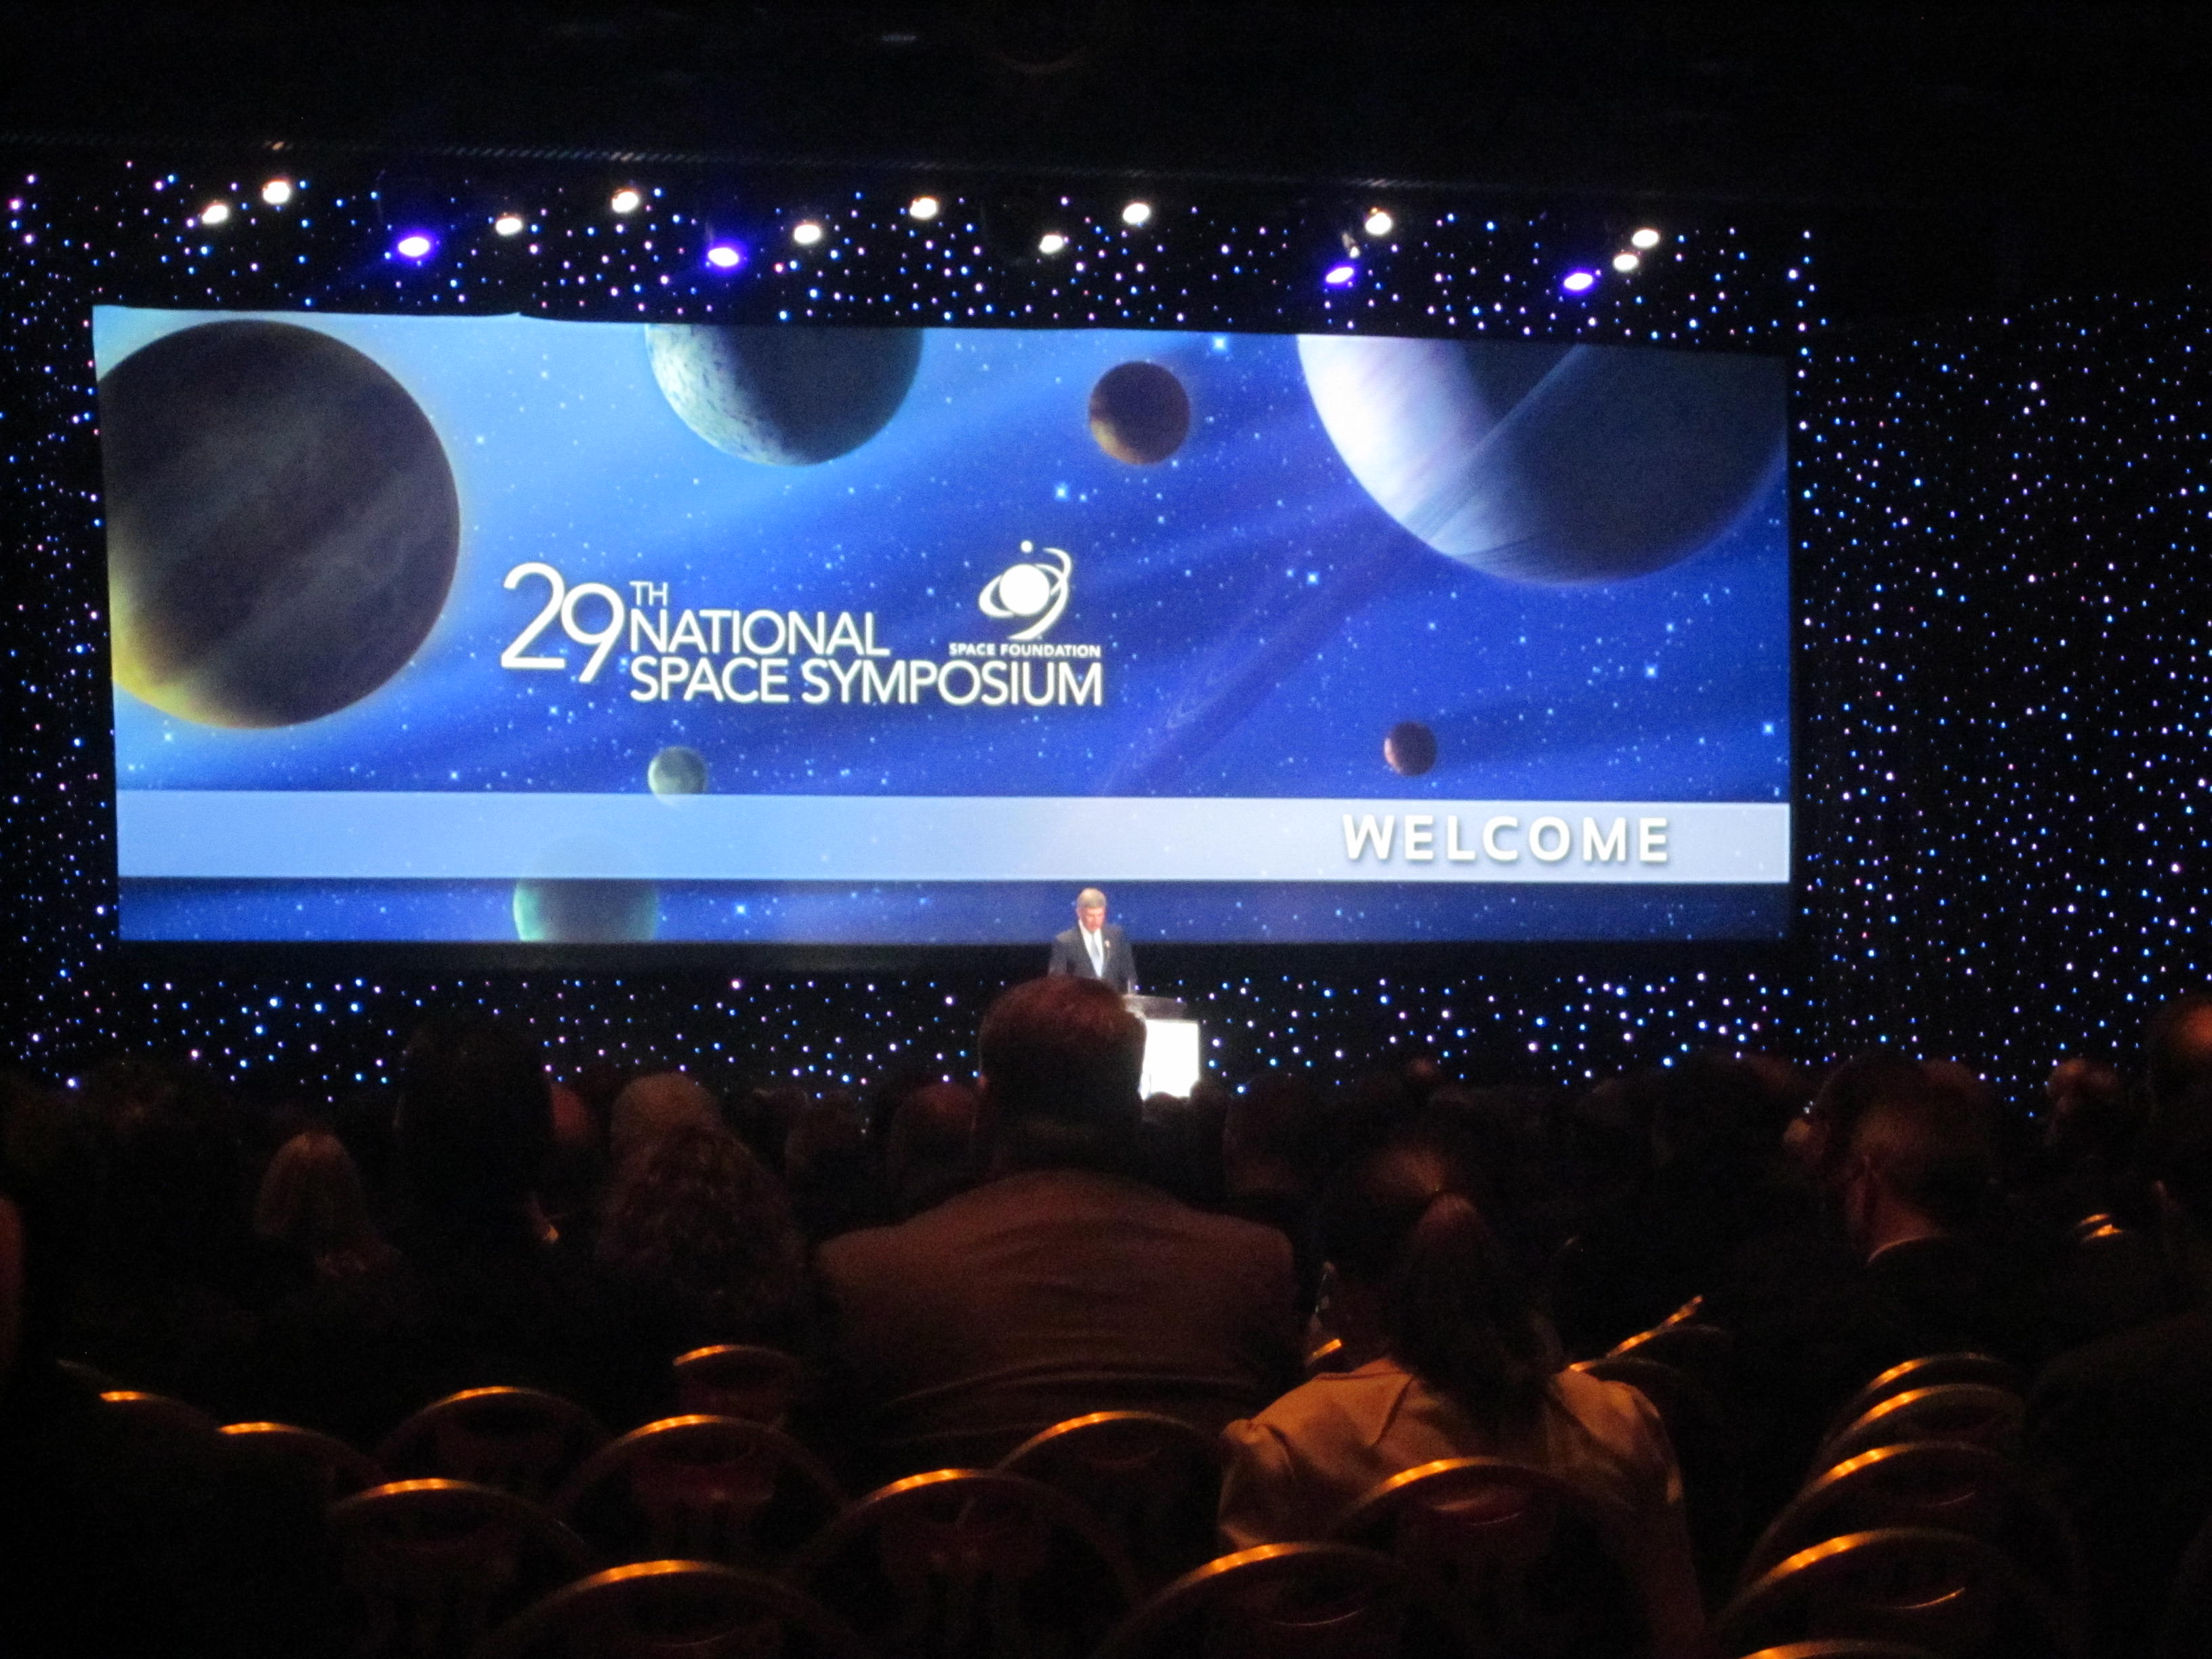 29th Annual National Space Symposium Stage